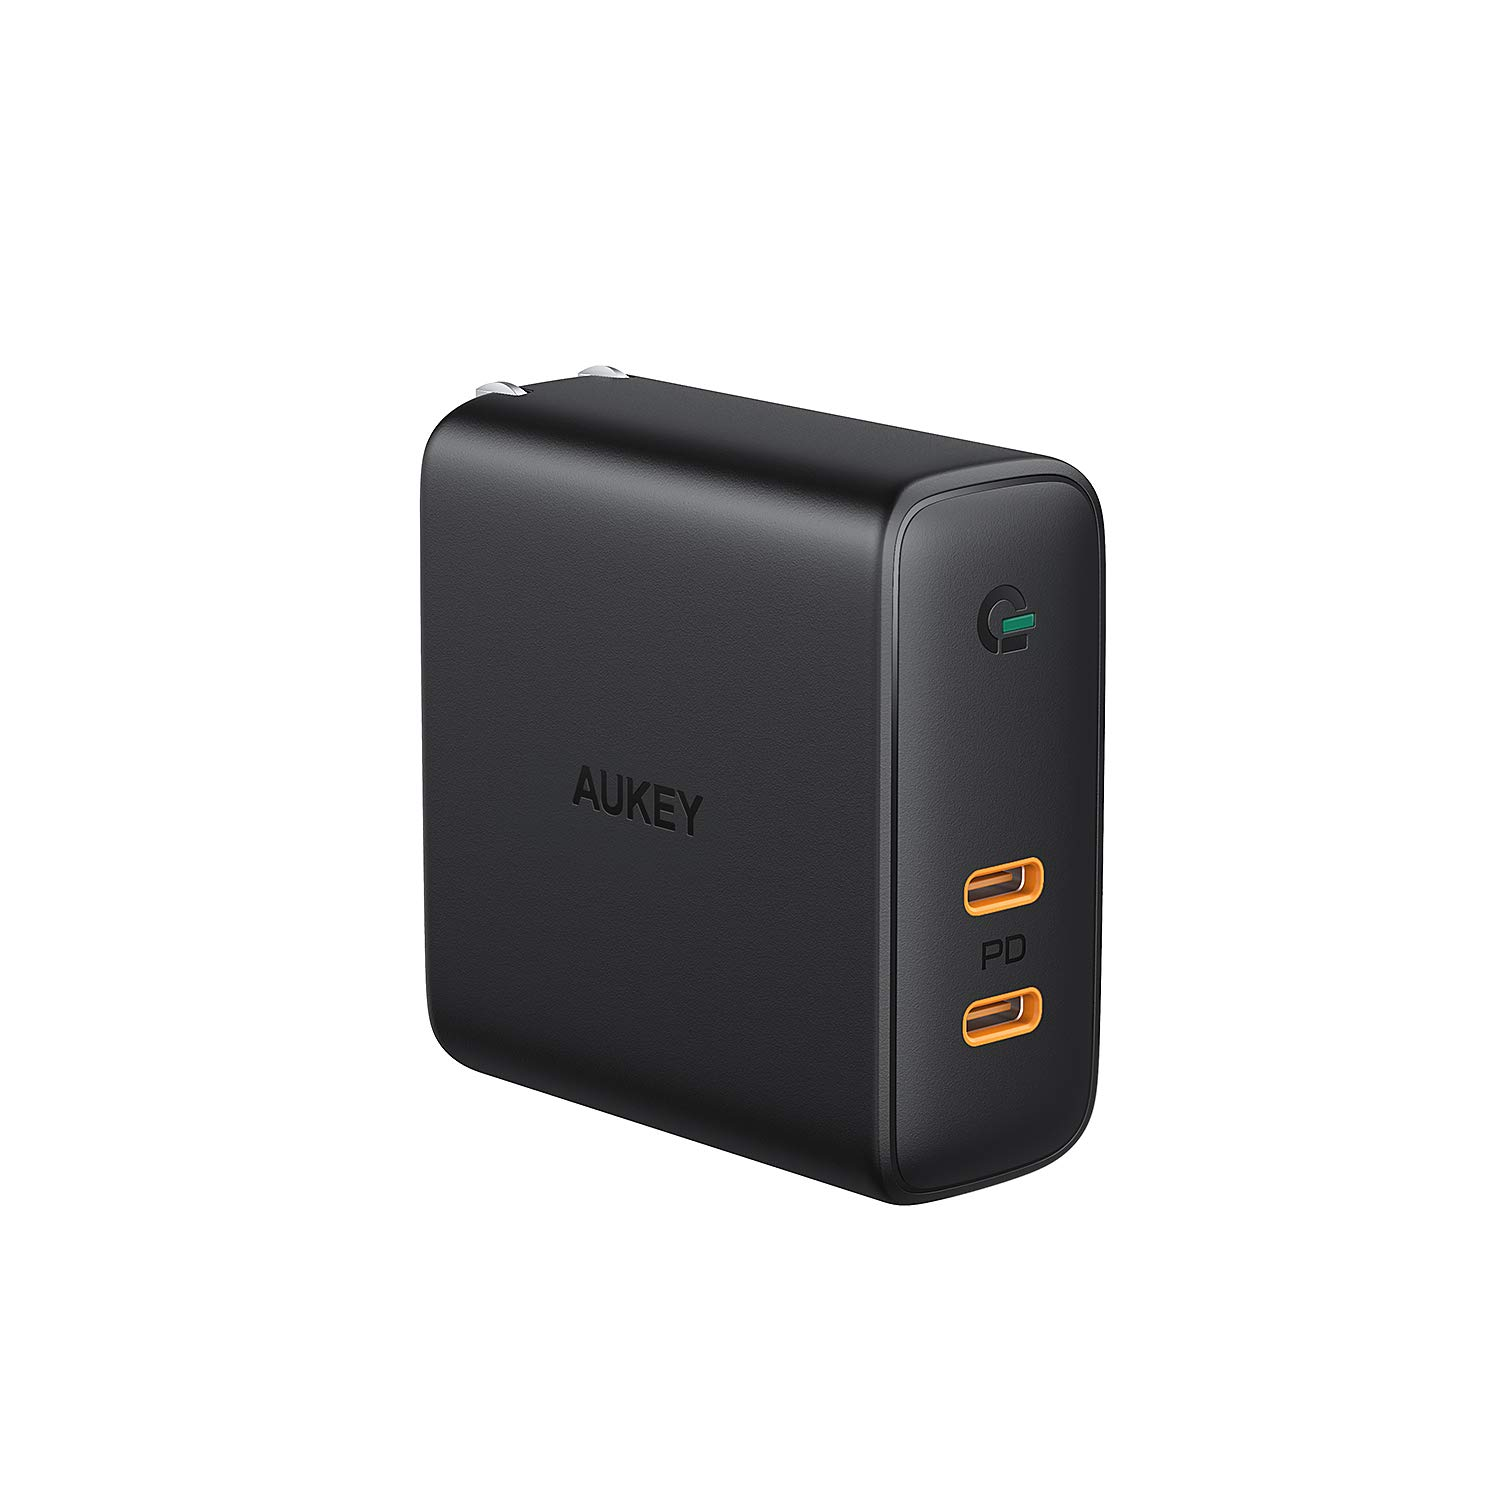 AUKEY USB C Wall Charger, USB PD Charger 60W PD 3.0 with Dynamic Detect & GaN Power Tech, 63W USB C Dual Port for MacBook Pro, iPhone 11 Pro / 11 Pro Max / 11, Pixel 3 / 3XL, Nintendo Switch, and More by AUKEY